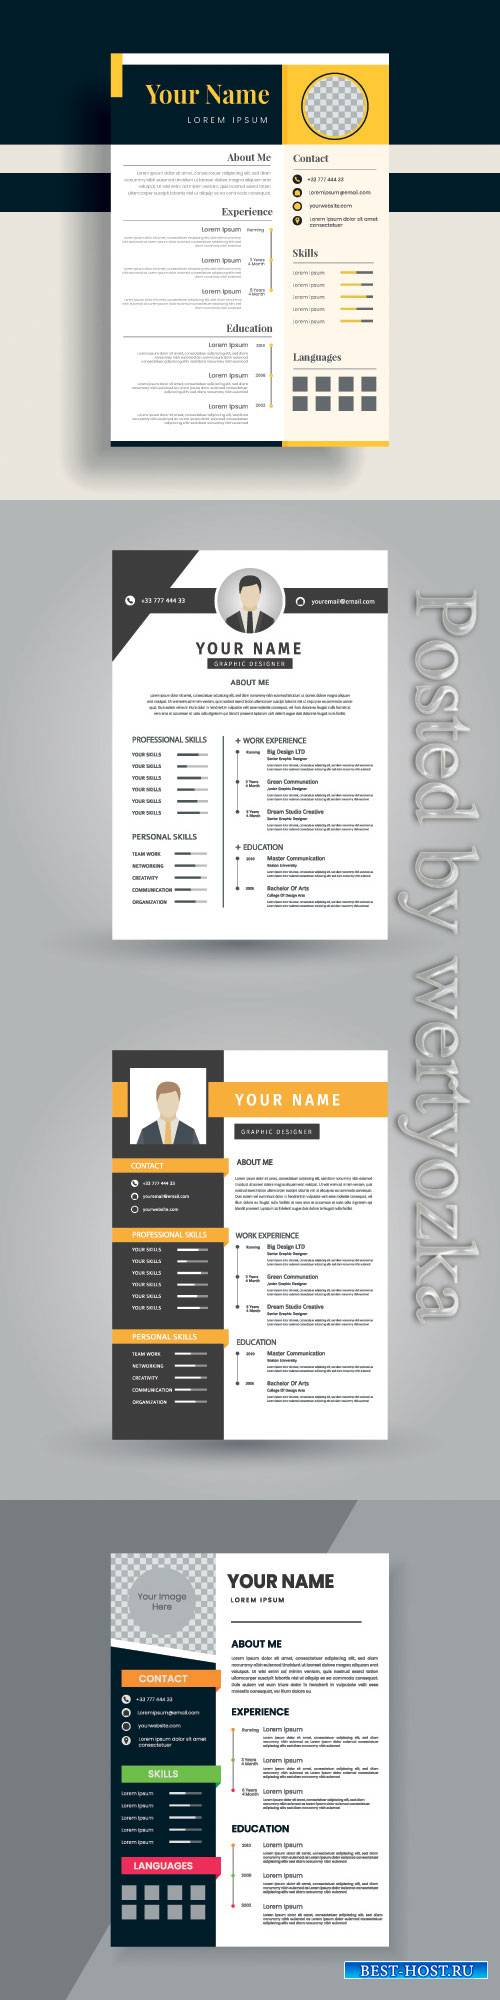 Resume vector template